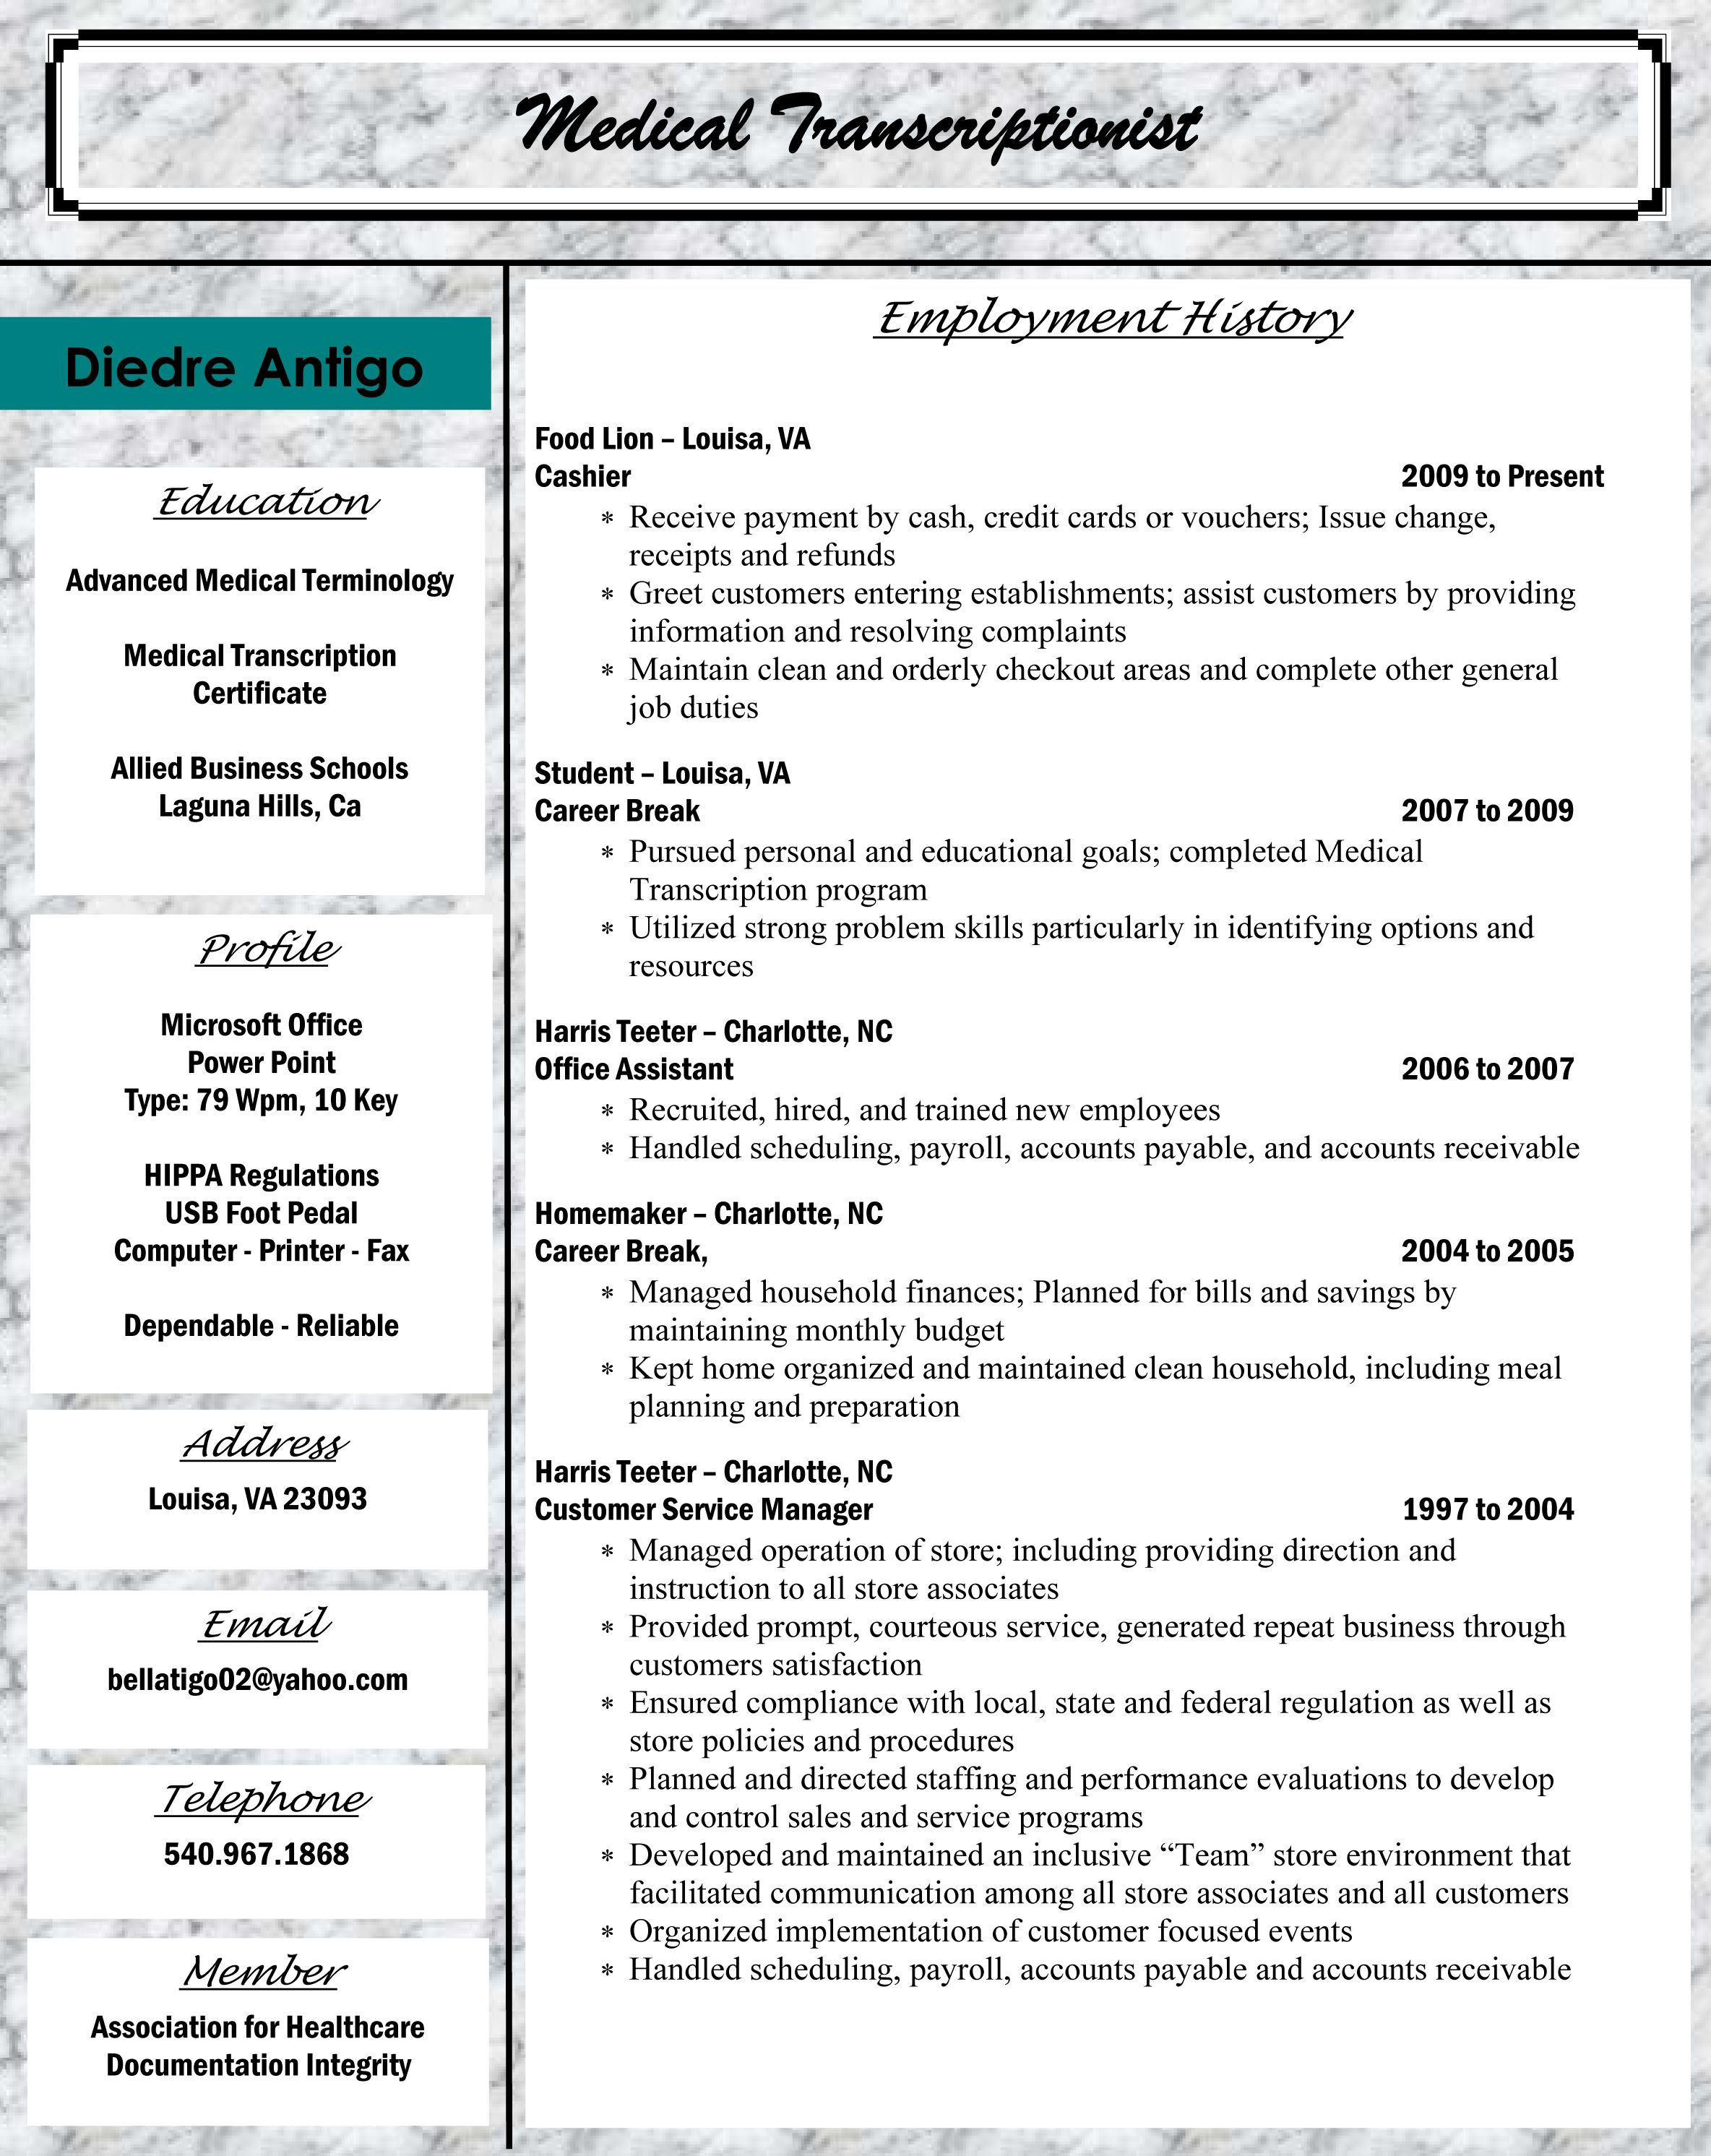 Allied Student Diedre Antigo Medical Transcriptionist Transcription Resume